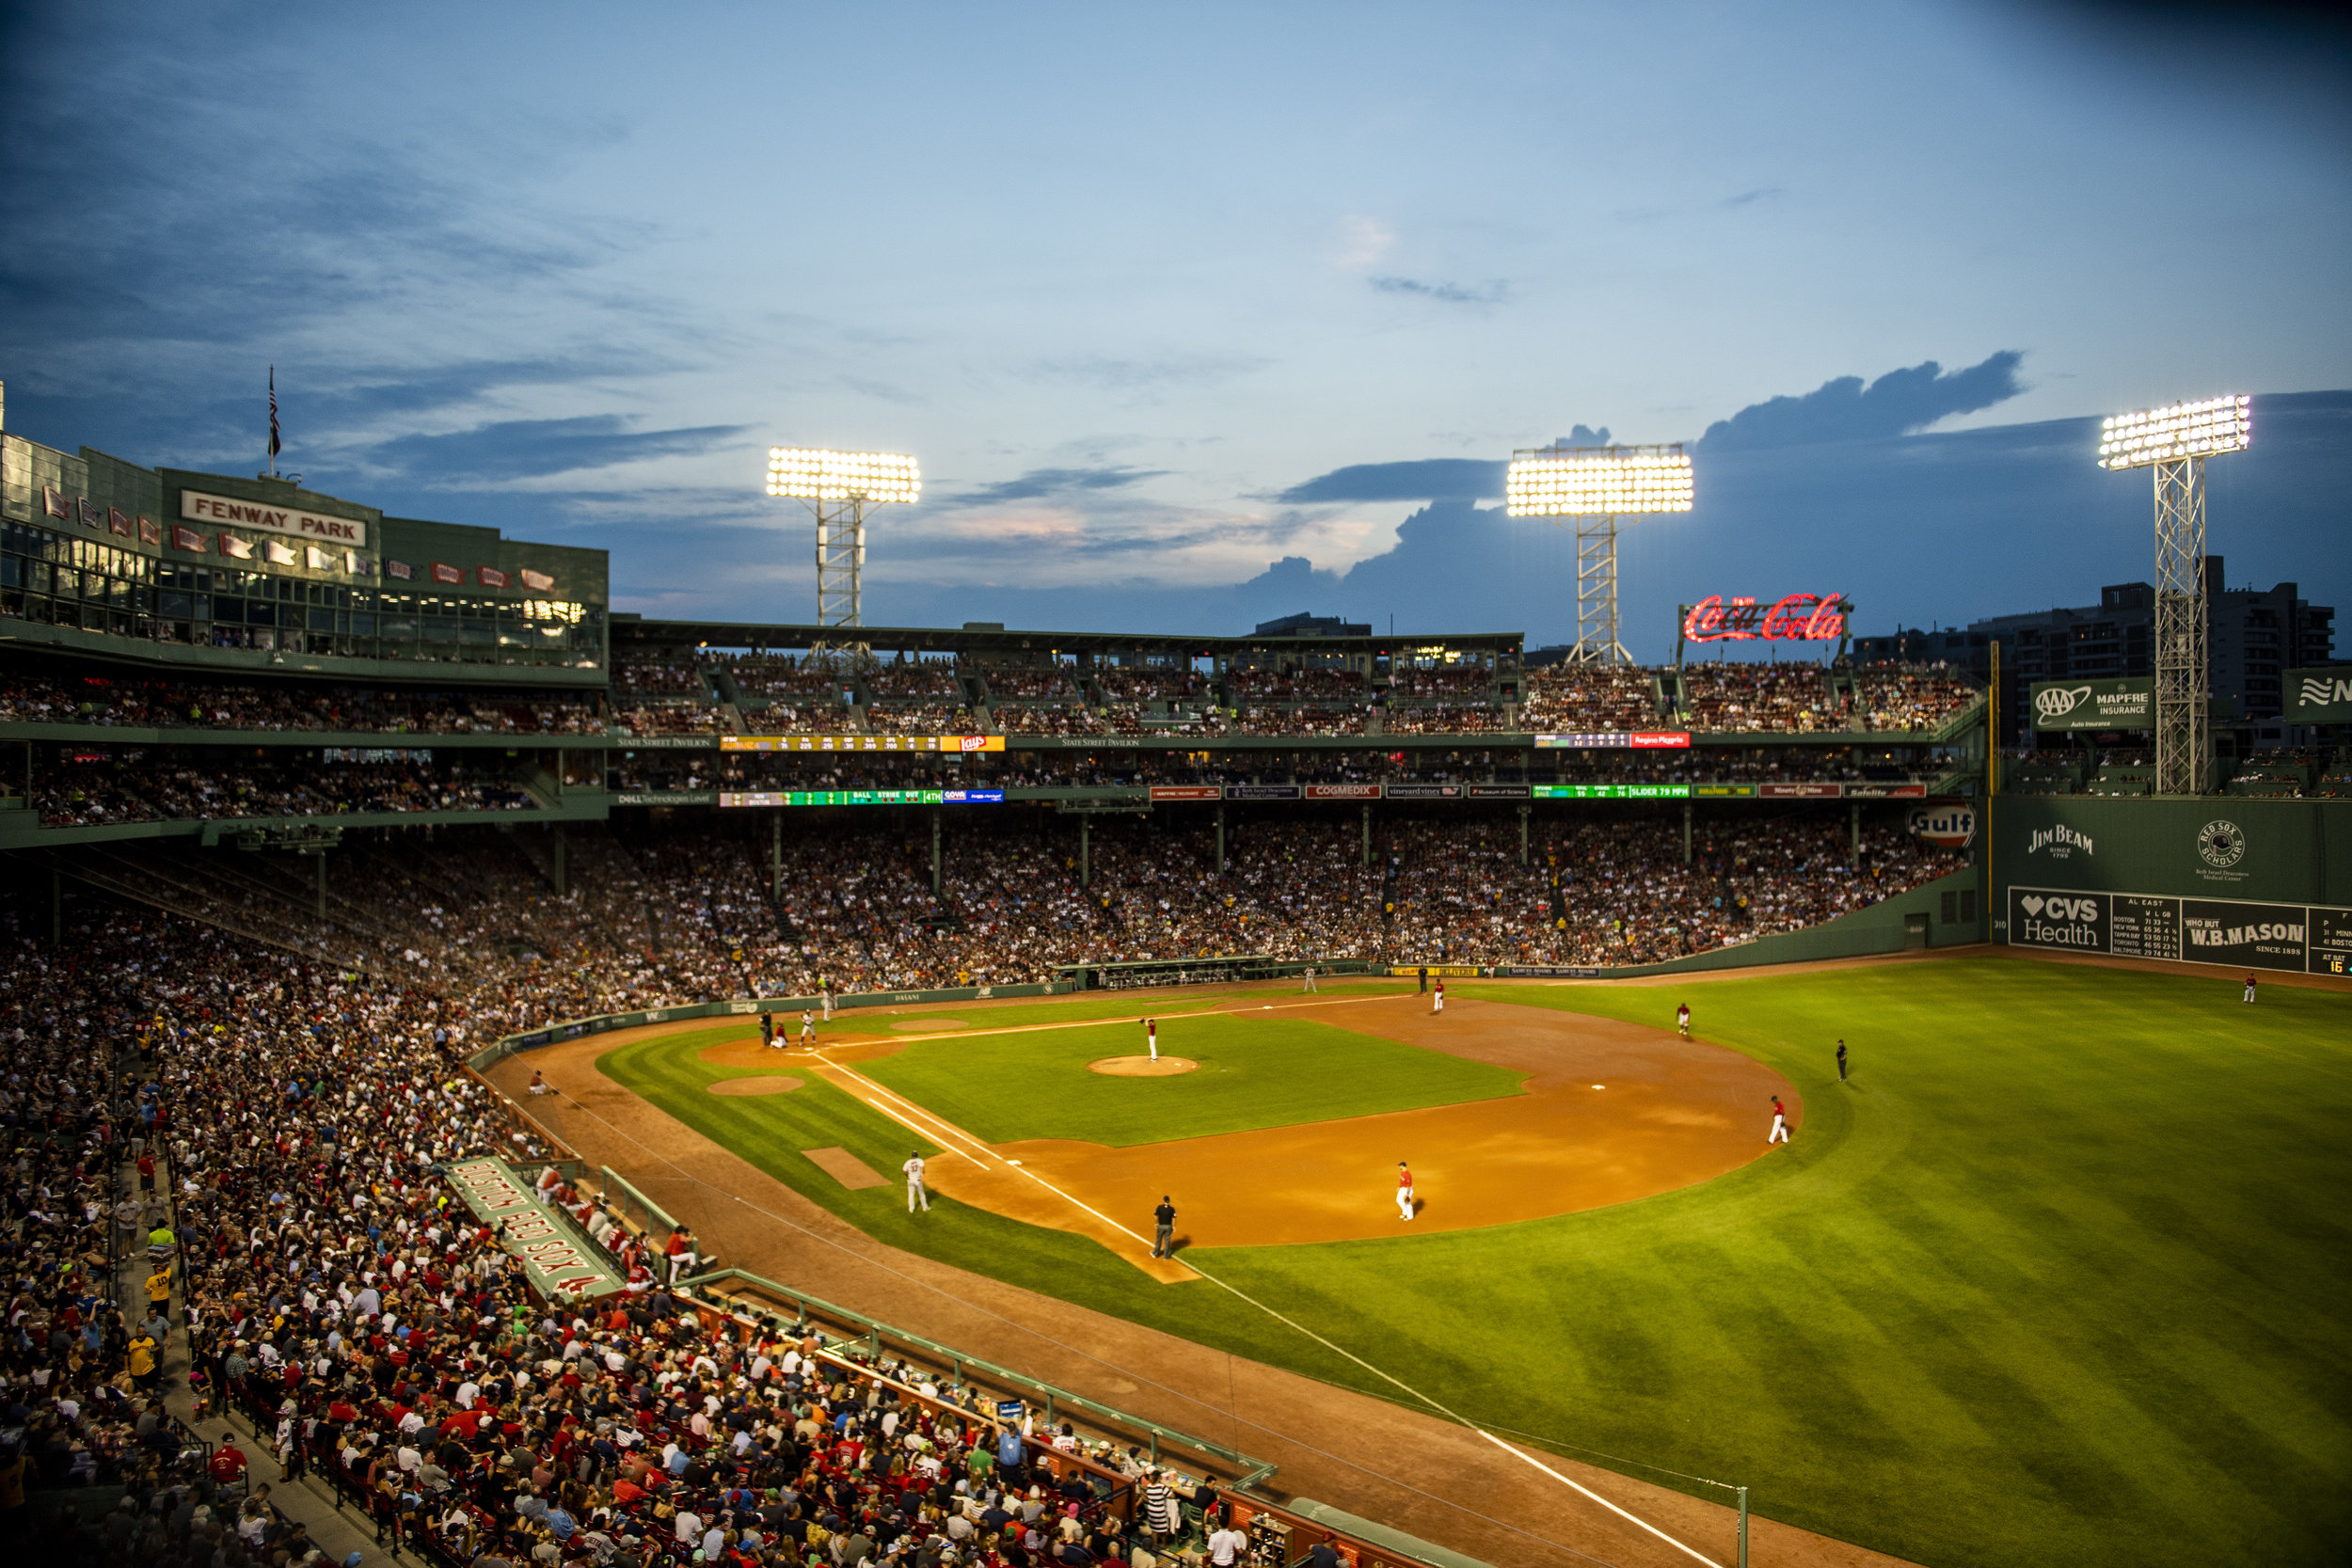 July 26, 2018, Boston, MA: The sun sets over fenway park as the Boston Red Sox face the Minnesota Twins at Fenway Park in Boston, Massachusetts on Friday, July 27, 2018. (Photo by Matthew Thomas/Boston Red Sox)